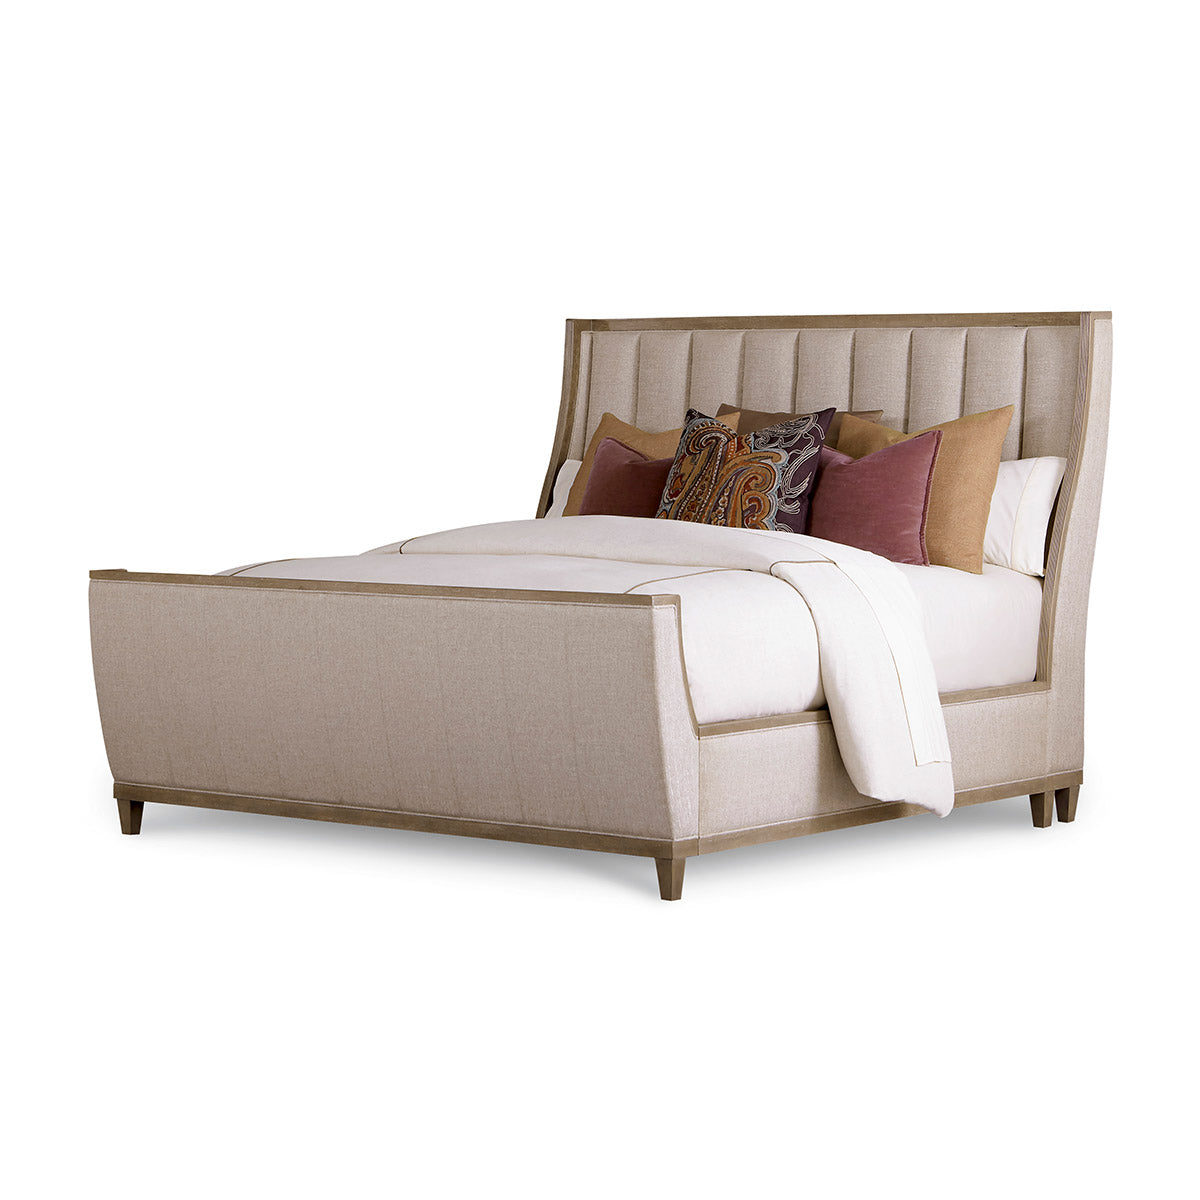 Carolina Upholstered Queen Bed